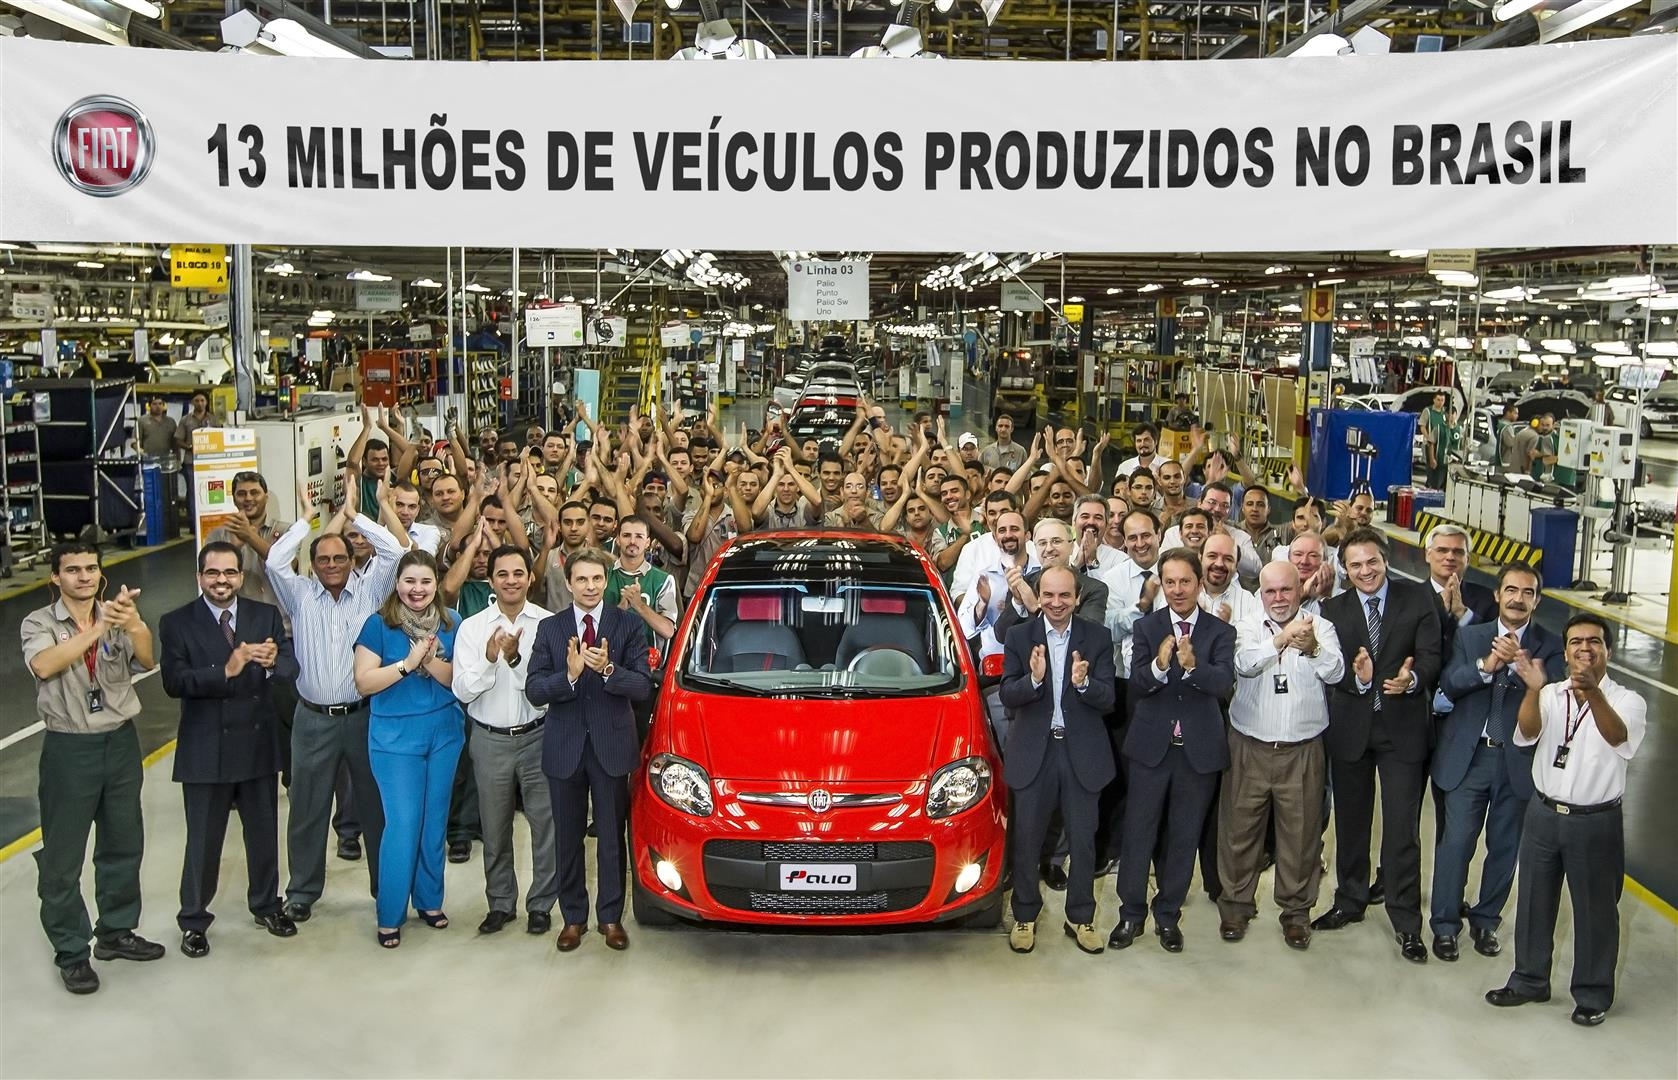 The Importance Of Brazil For Future Fiat Cars Fiat Group S World